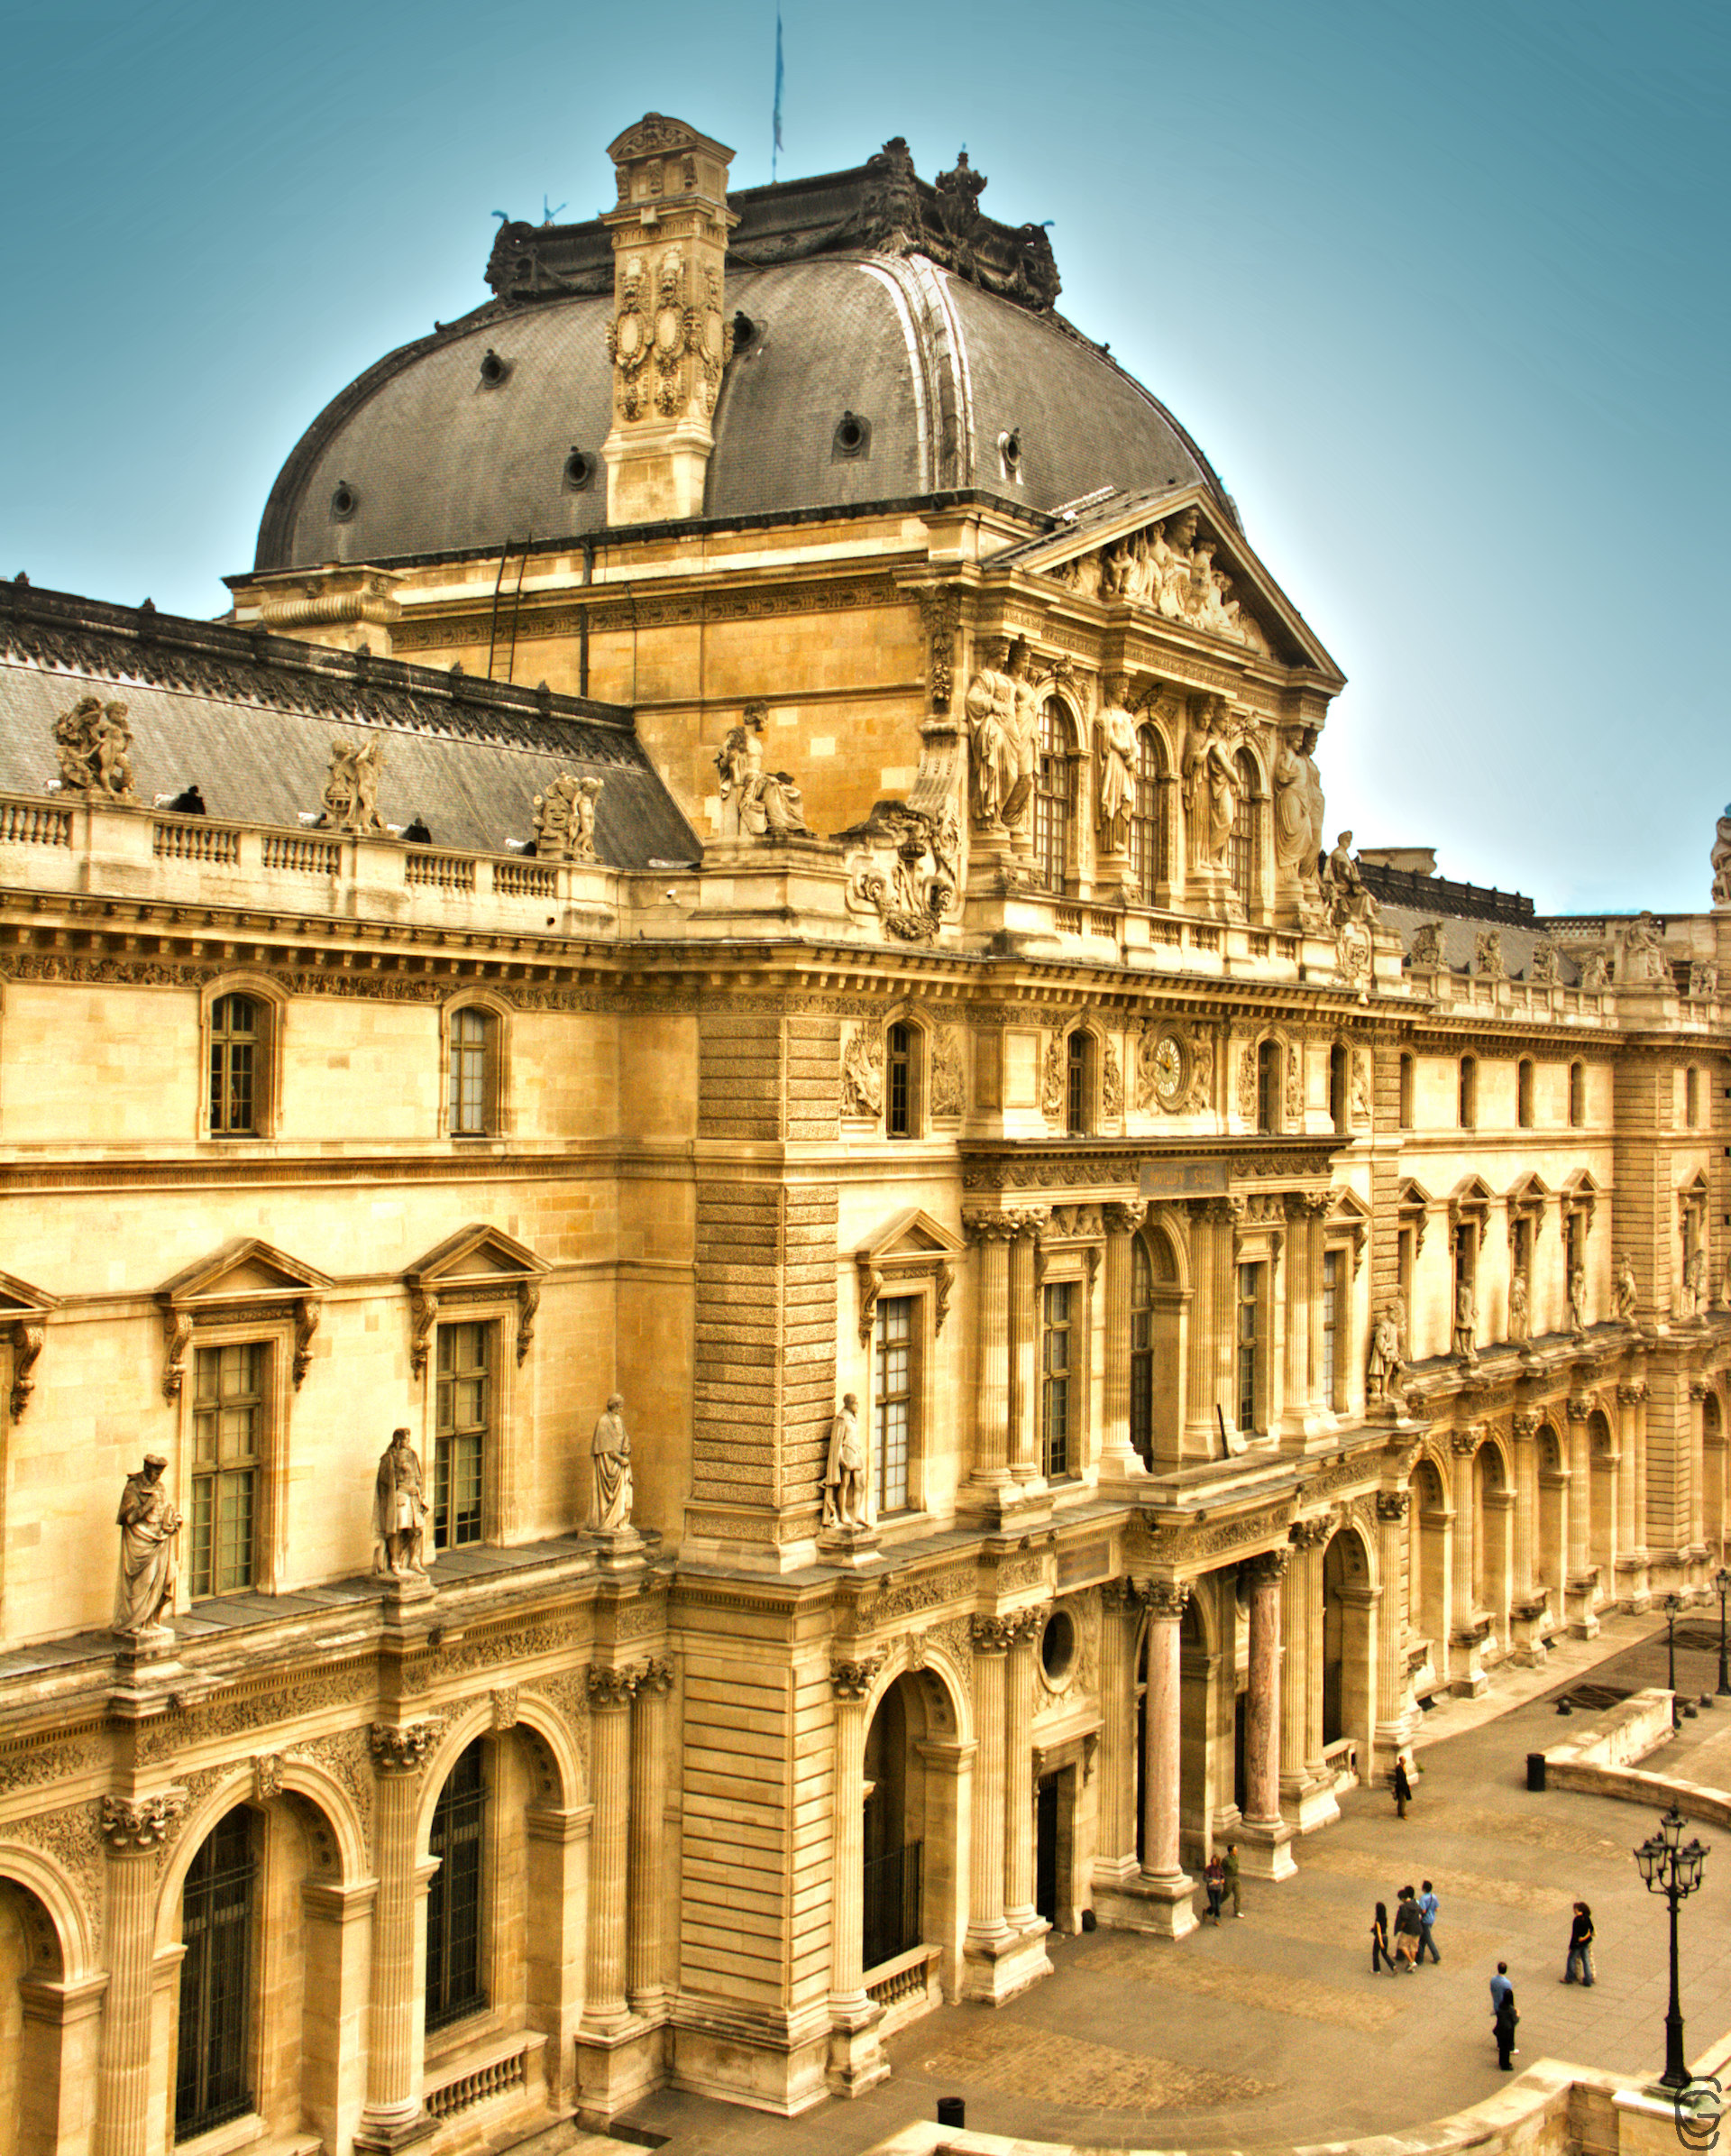 From Louvre inside out - Week of Mar. 26th to Mar. 30th